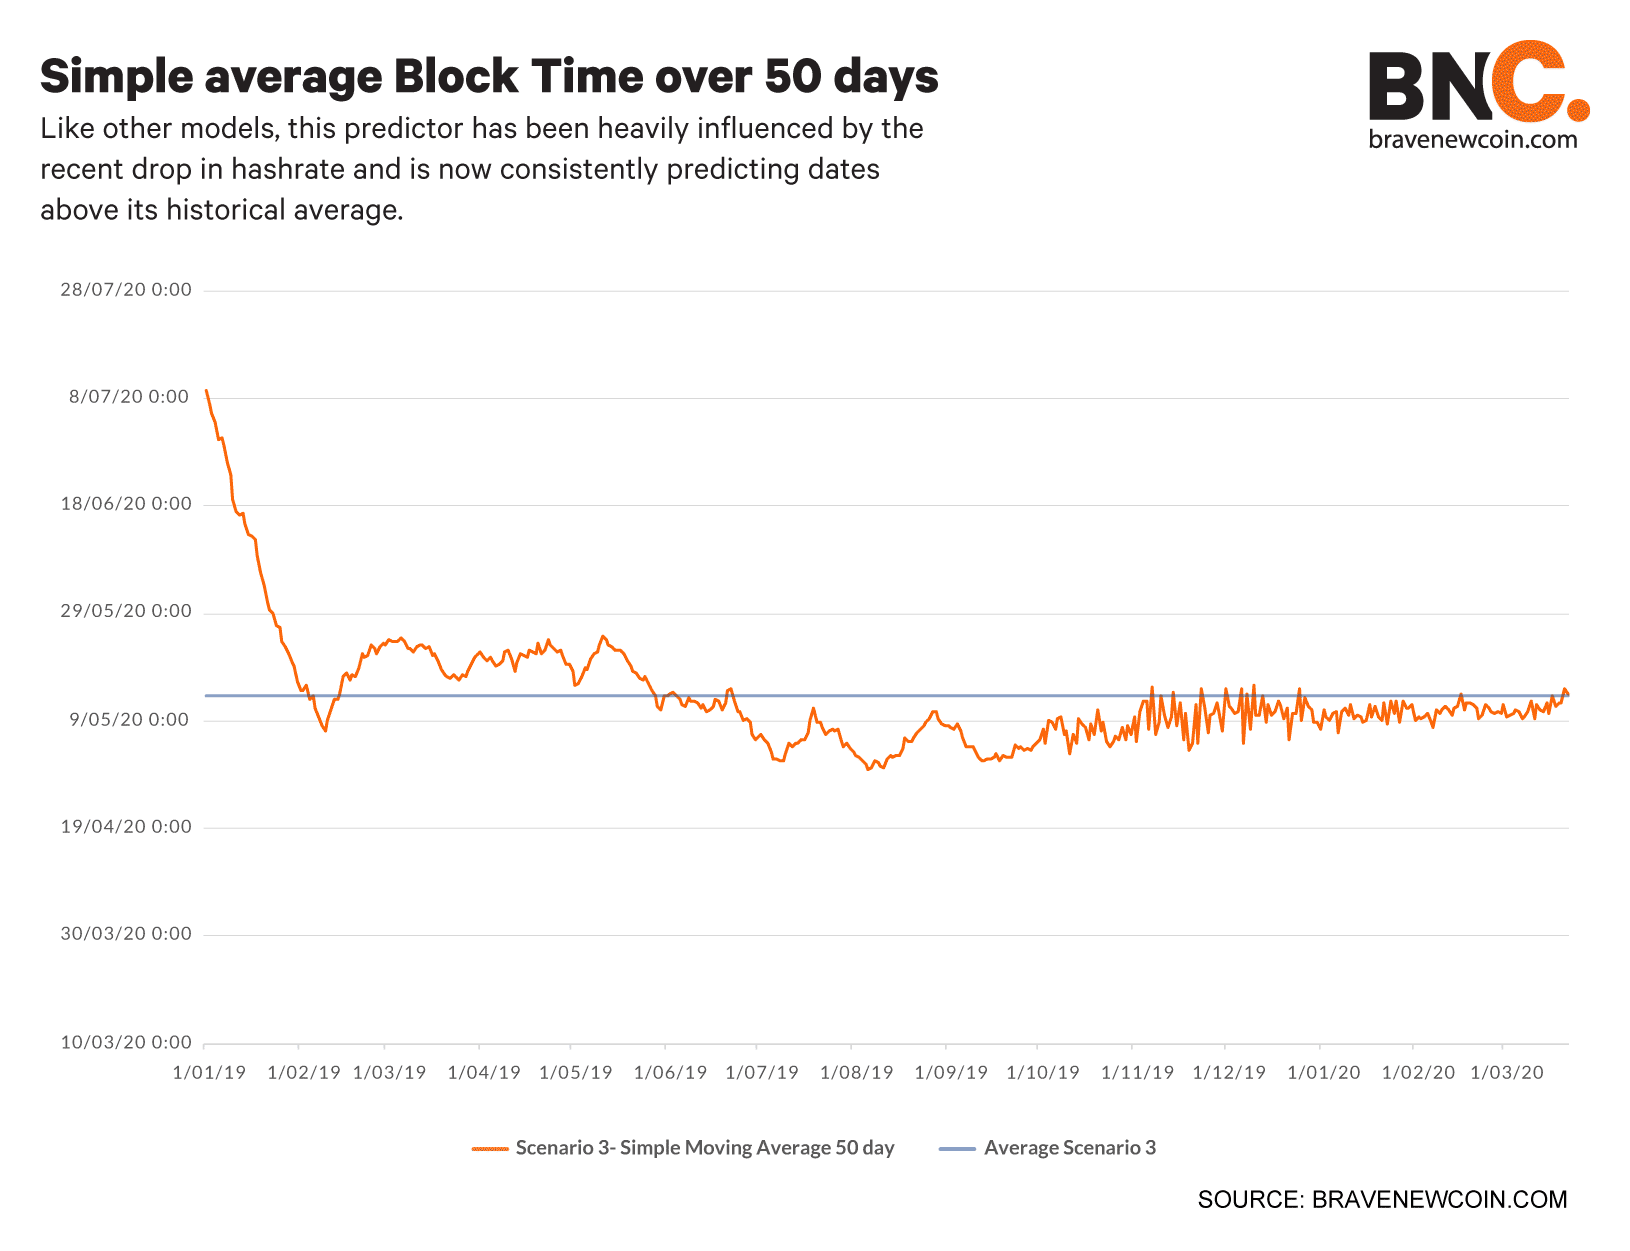 Simple-average-block-time-over-50-days (4)